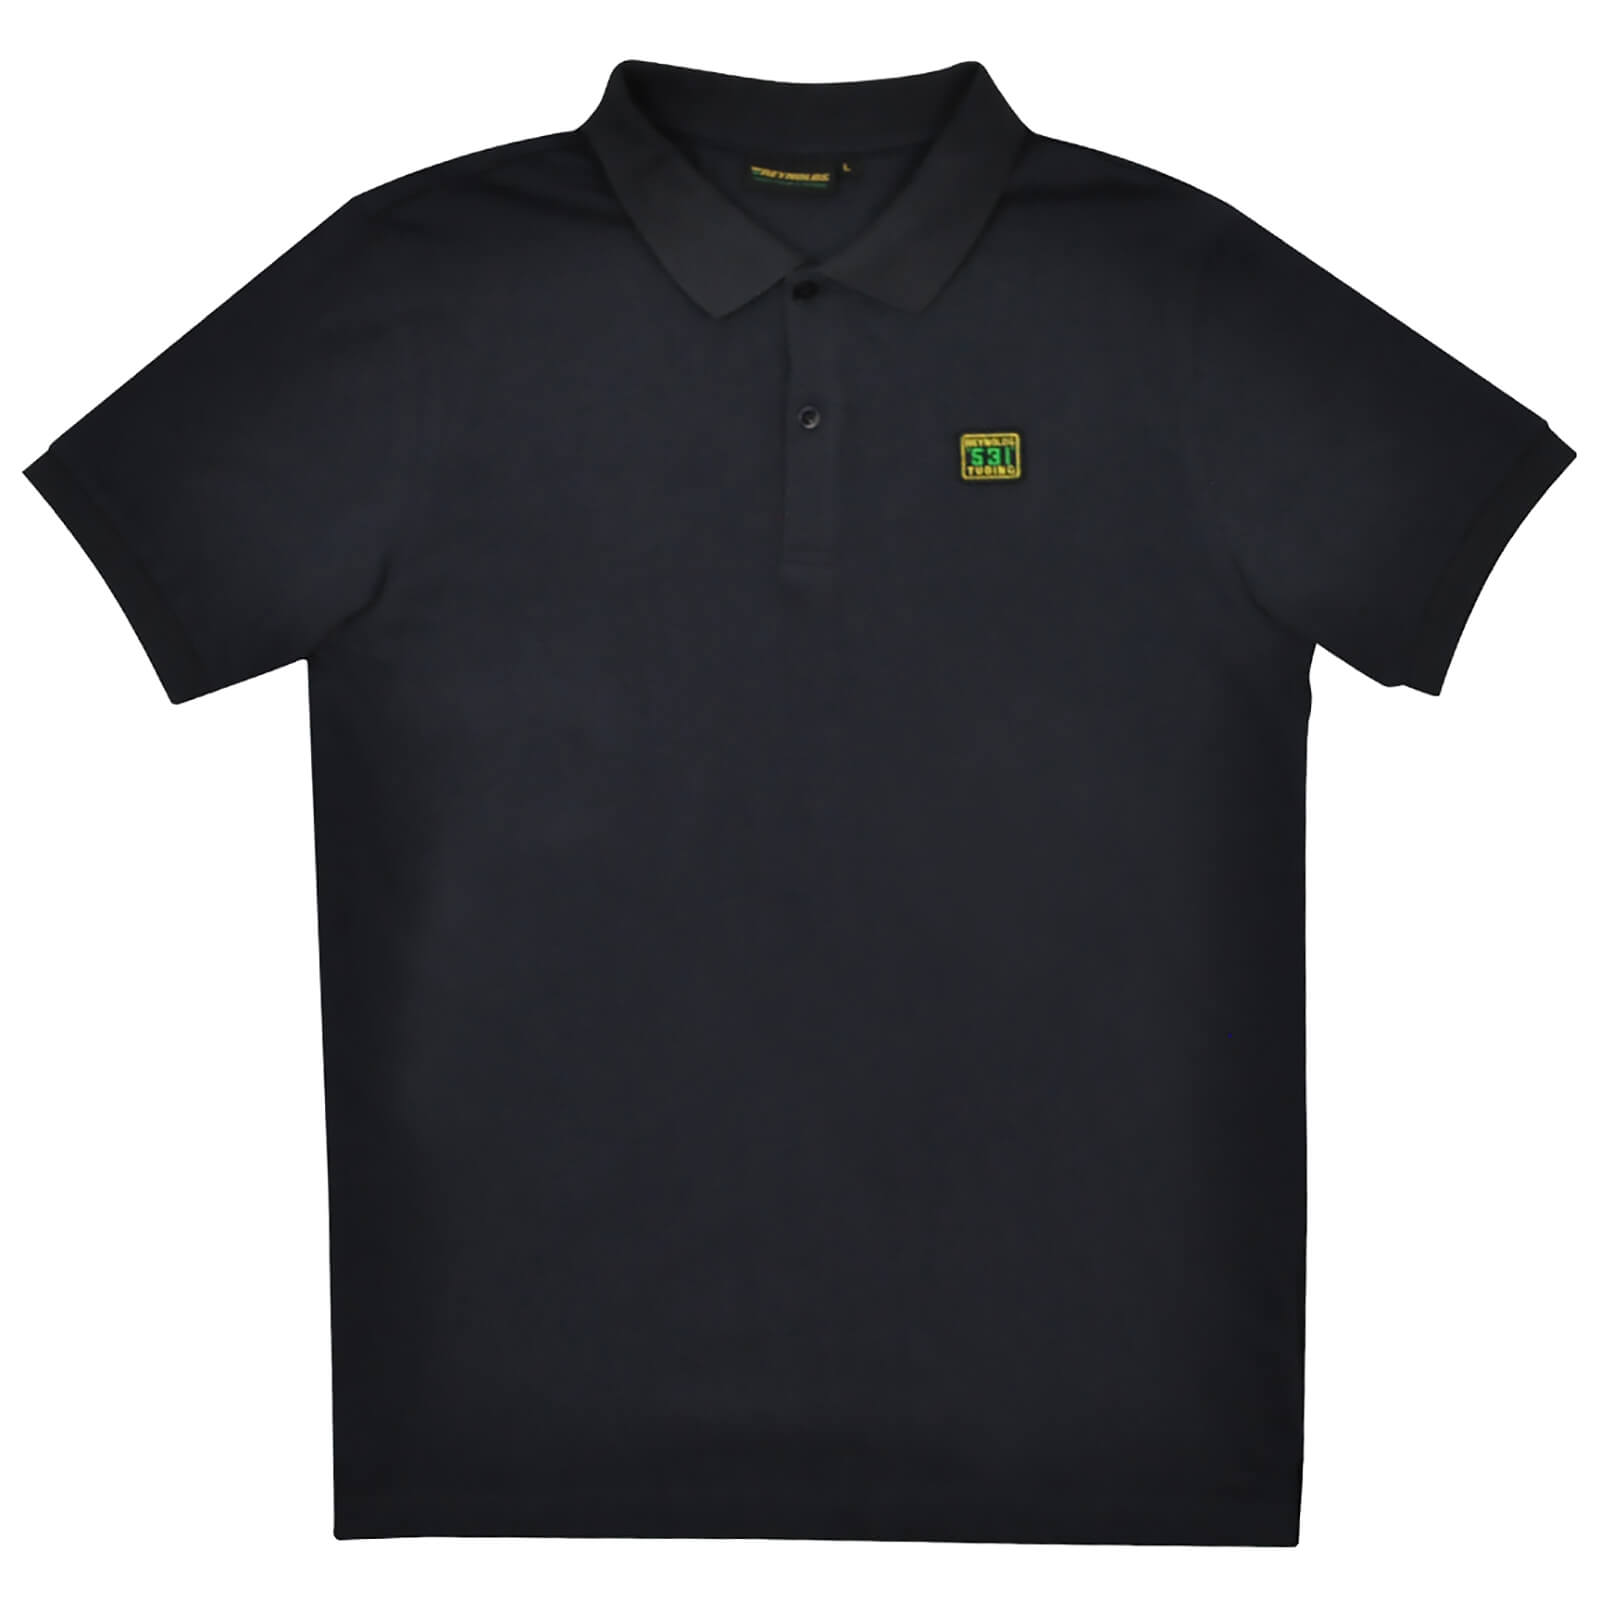 Reynolds 531 Polo Shirt - Navy | Trøjer